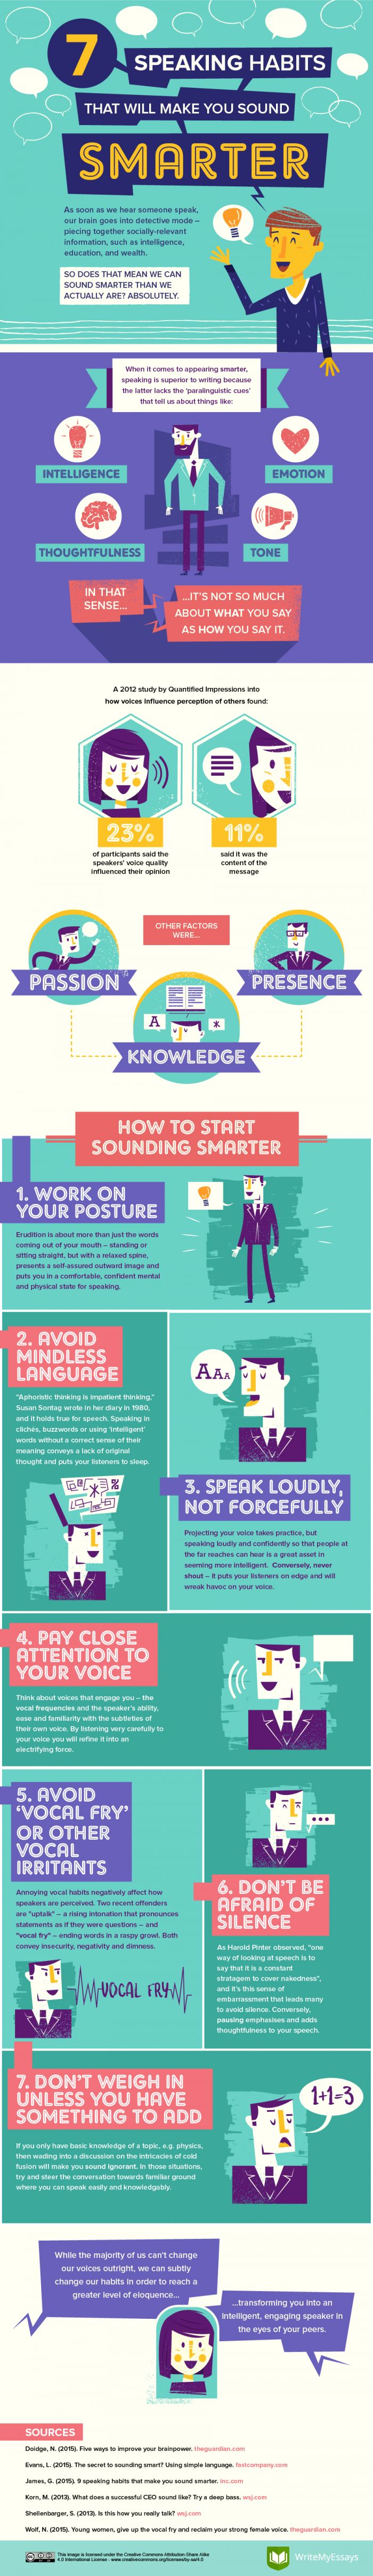 7 Speaking Habits To Make You Sound Smarter | Daily Infographic